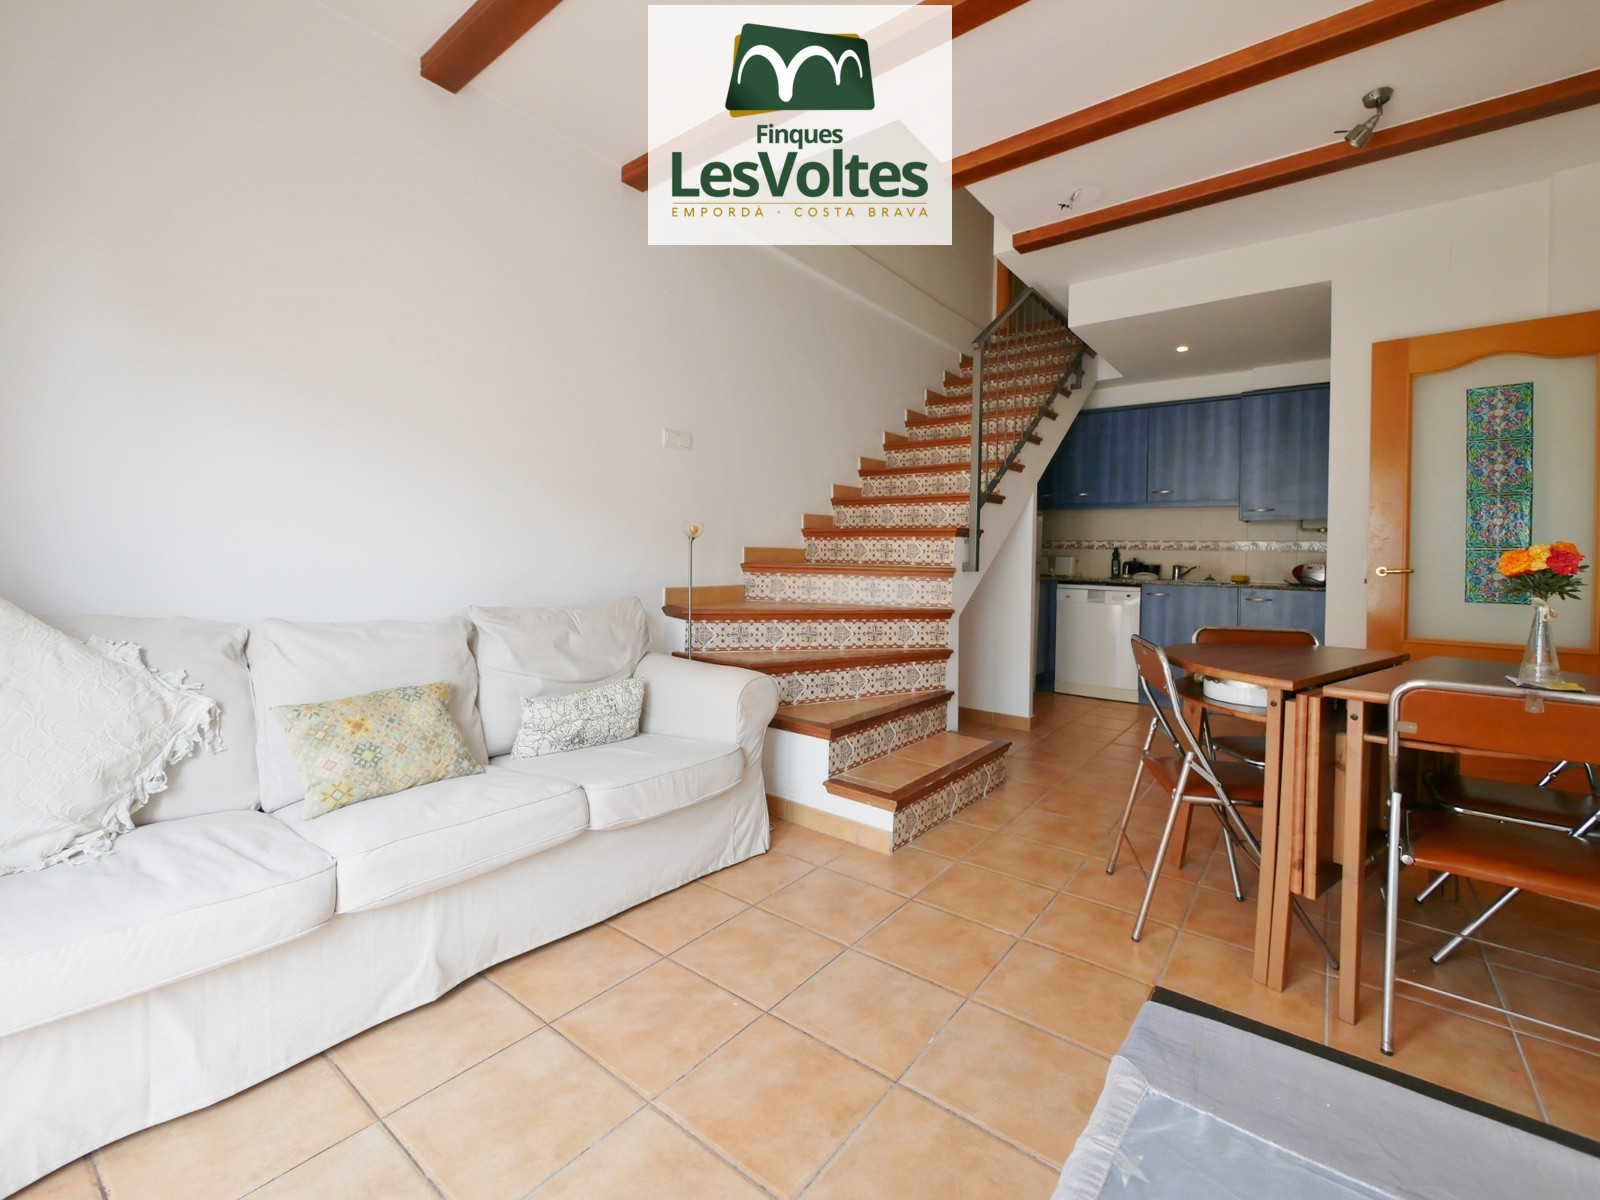 DUPLEX PENTHOUSE WITH PARKING SPACE AND TERRACE FOR SALE IN PALAFRUGELL. LOCATED IN THE CENTER OF THE VILLAGE IN A QUIET AREA